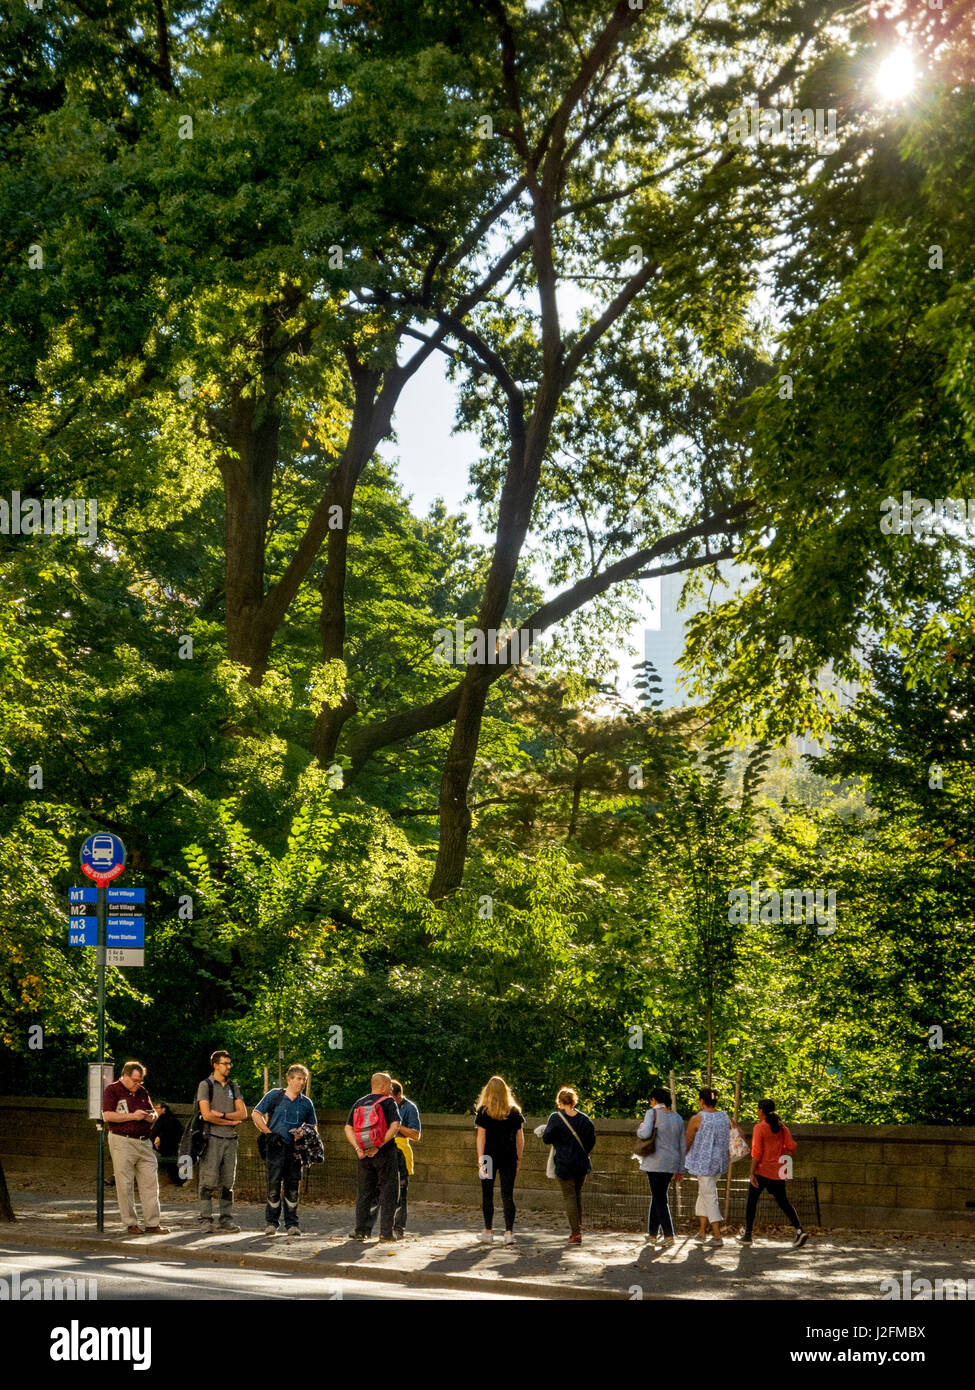 A diversified crowd of travelers waits at a southbound bus stop by Central Park on Fifth Avenue, NY City, on a sunny Stock Photo